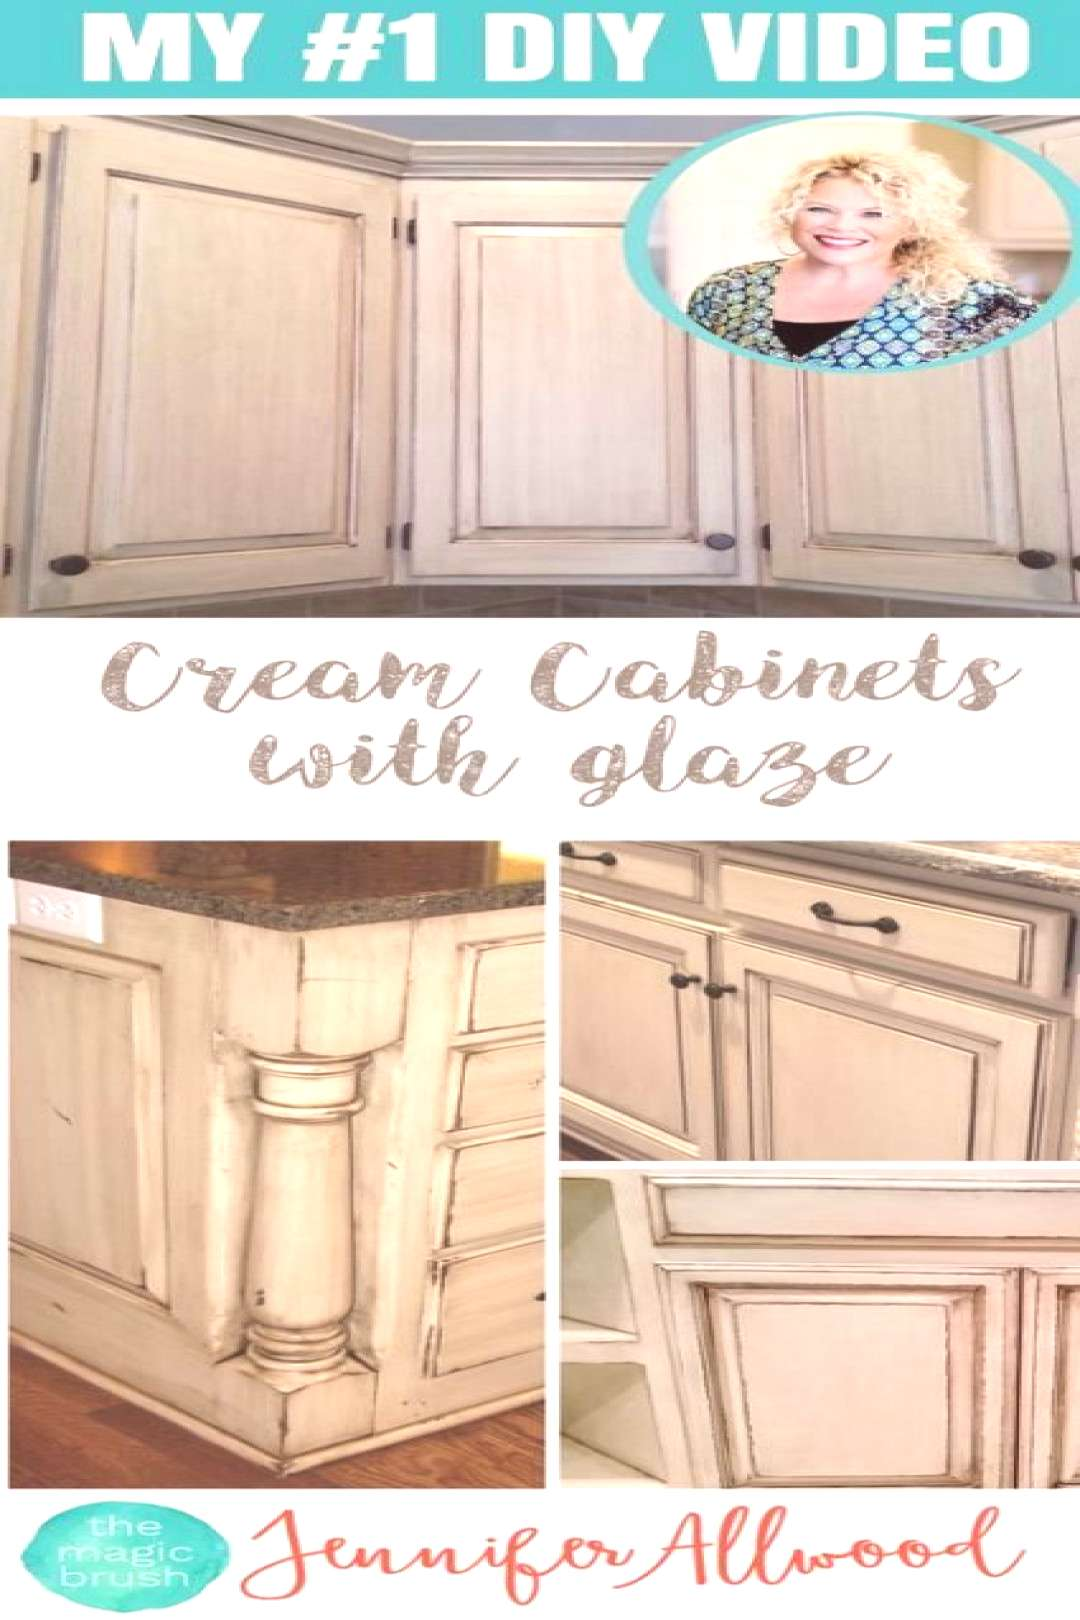 Trendy kitchen cabinets distressed ideas 50 Ideas#cabinets